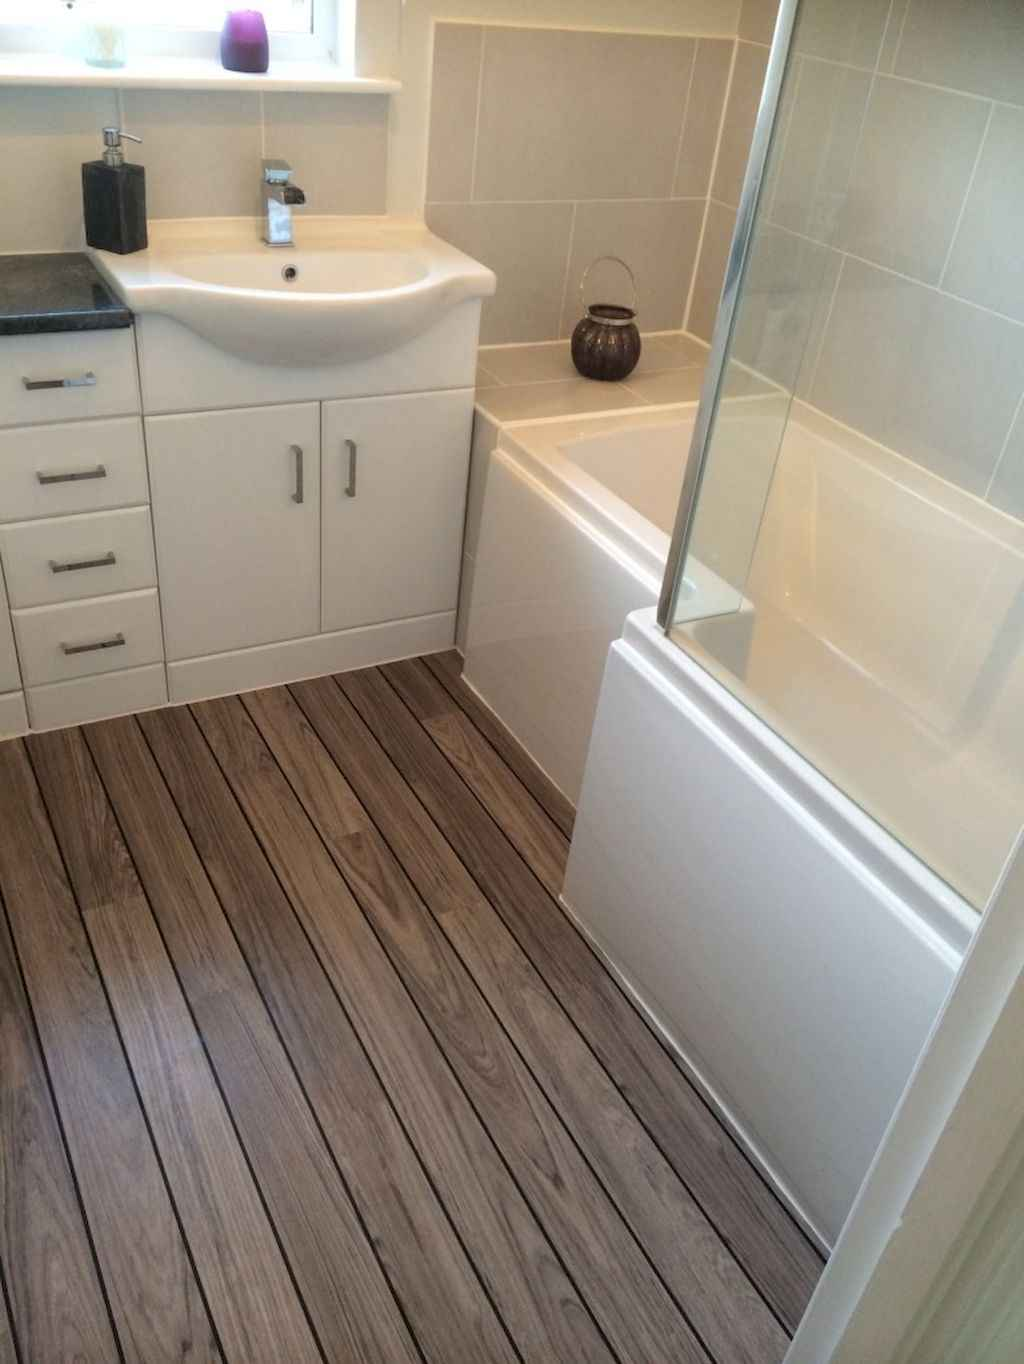 Cool small master bathroom remodel ideas on a budget 14 for Cool small bathroom designs